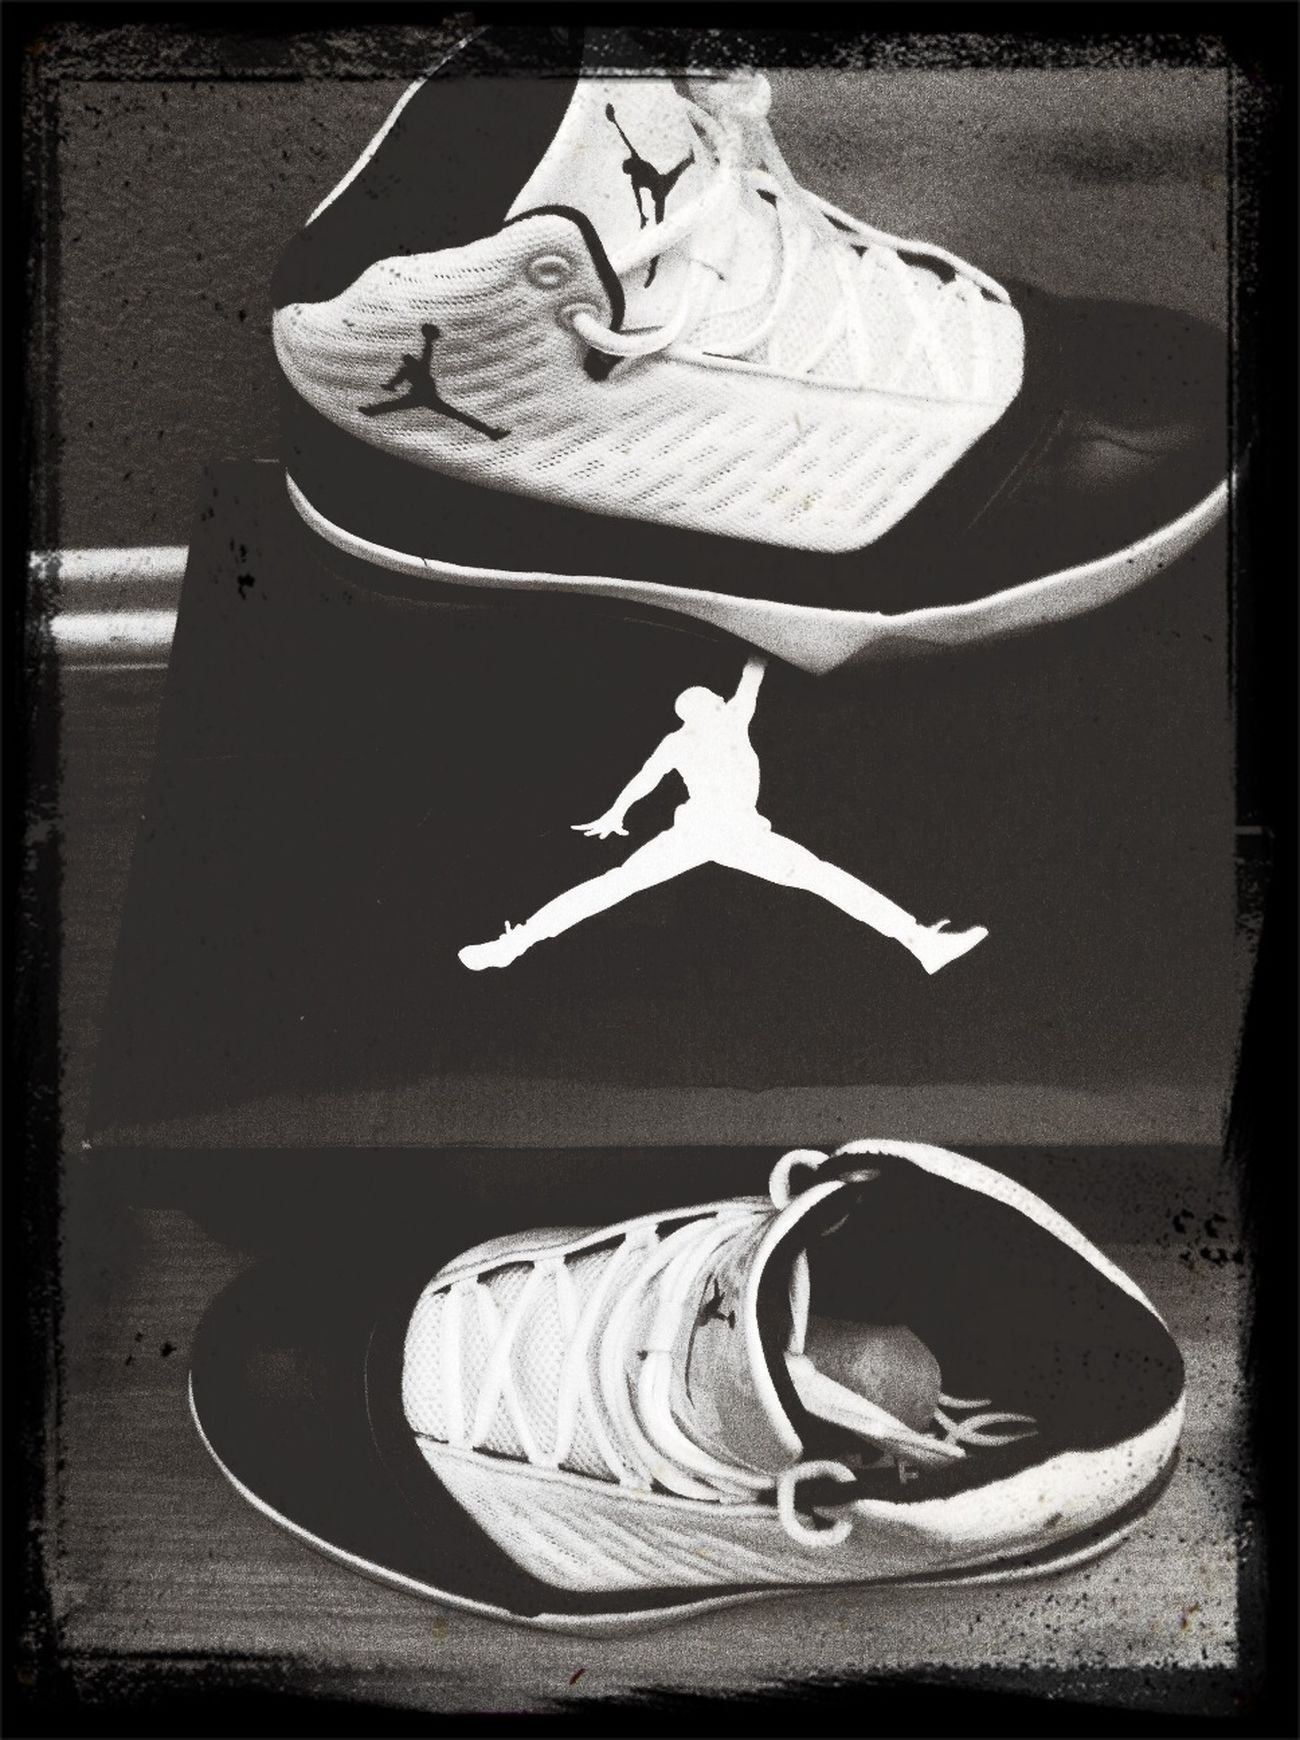 SICK!! LoveJordans